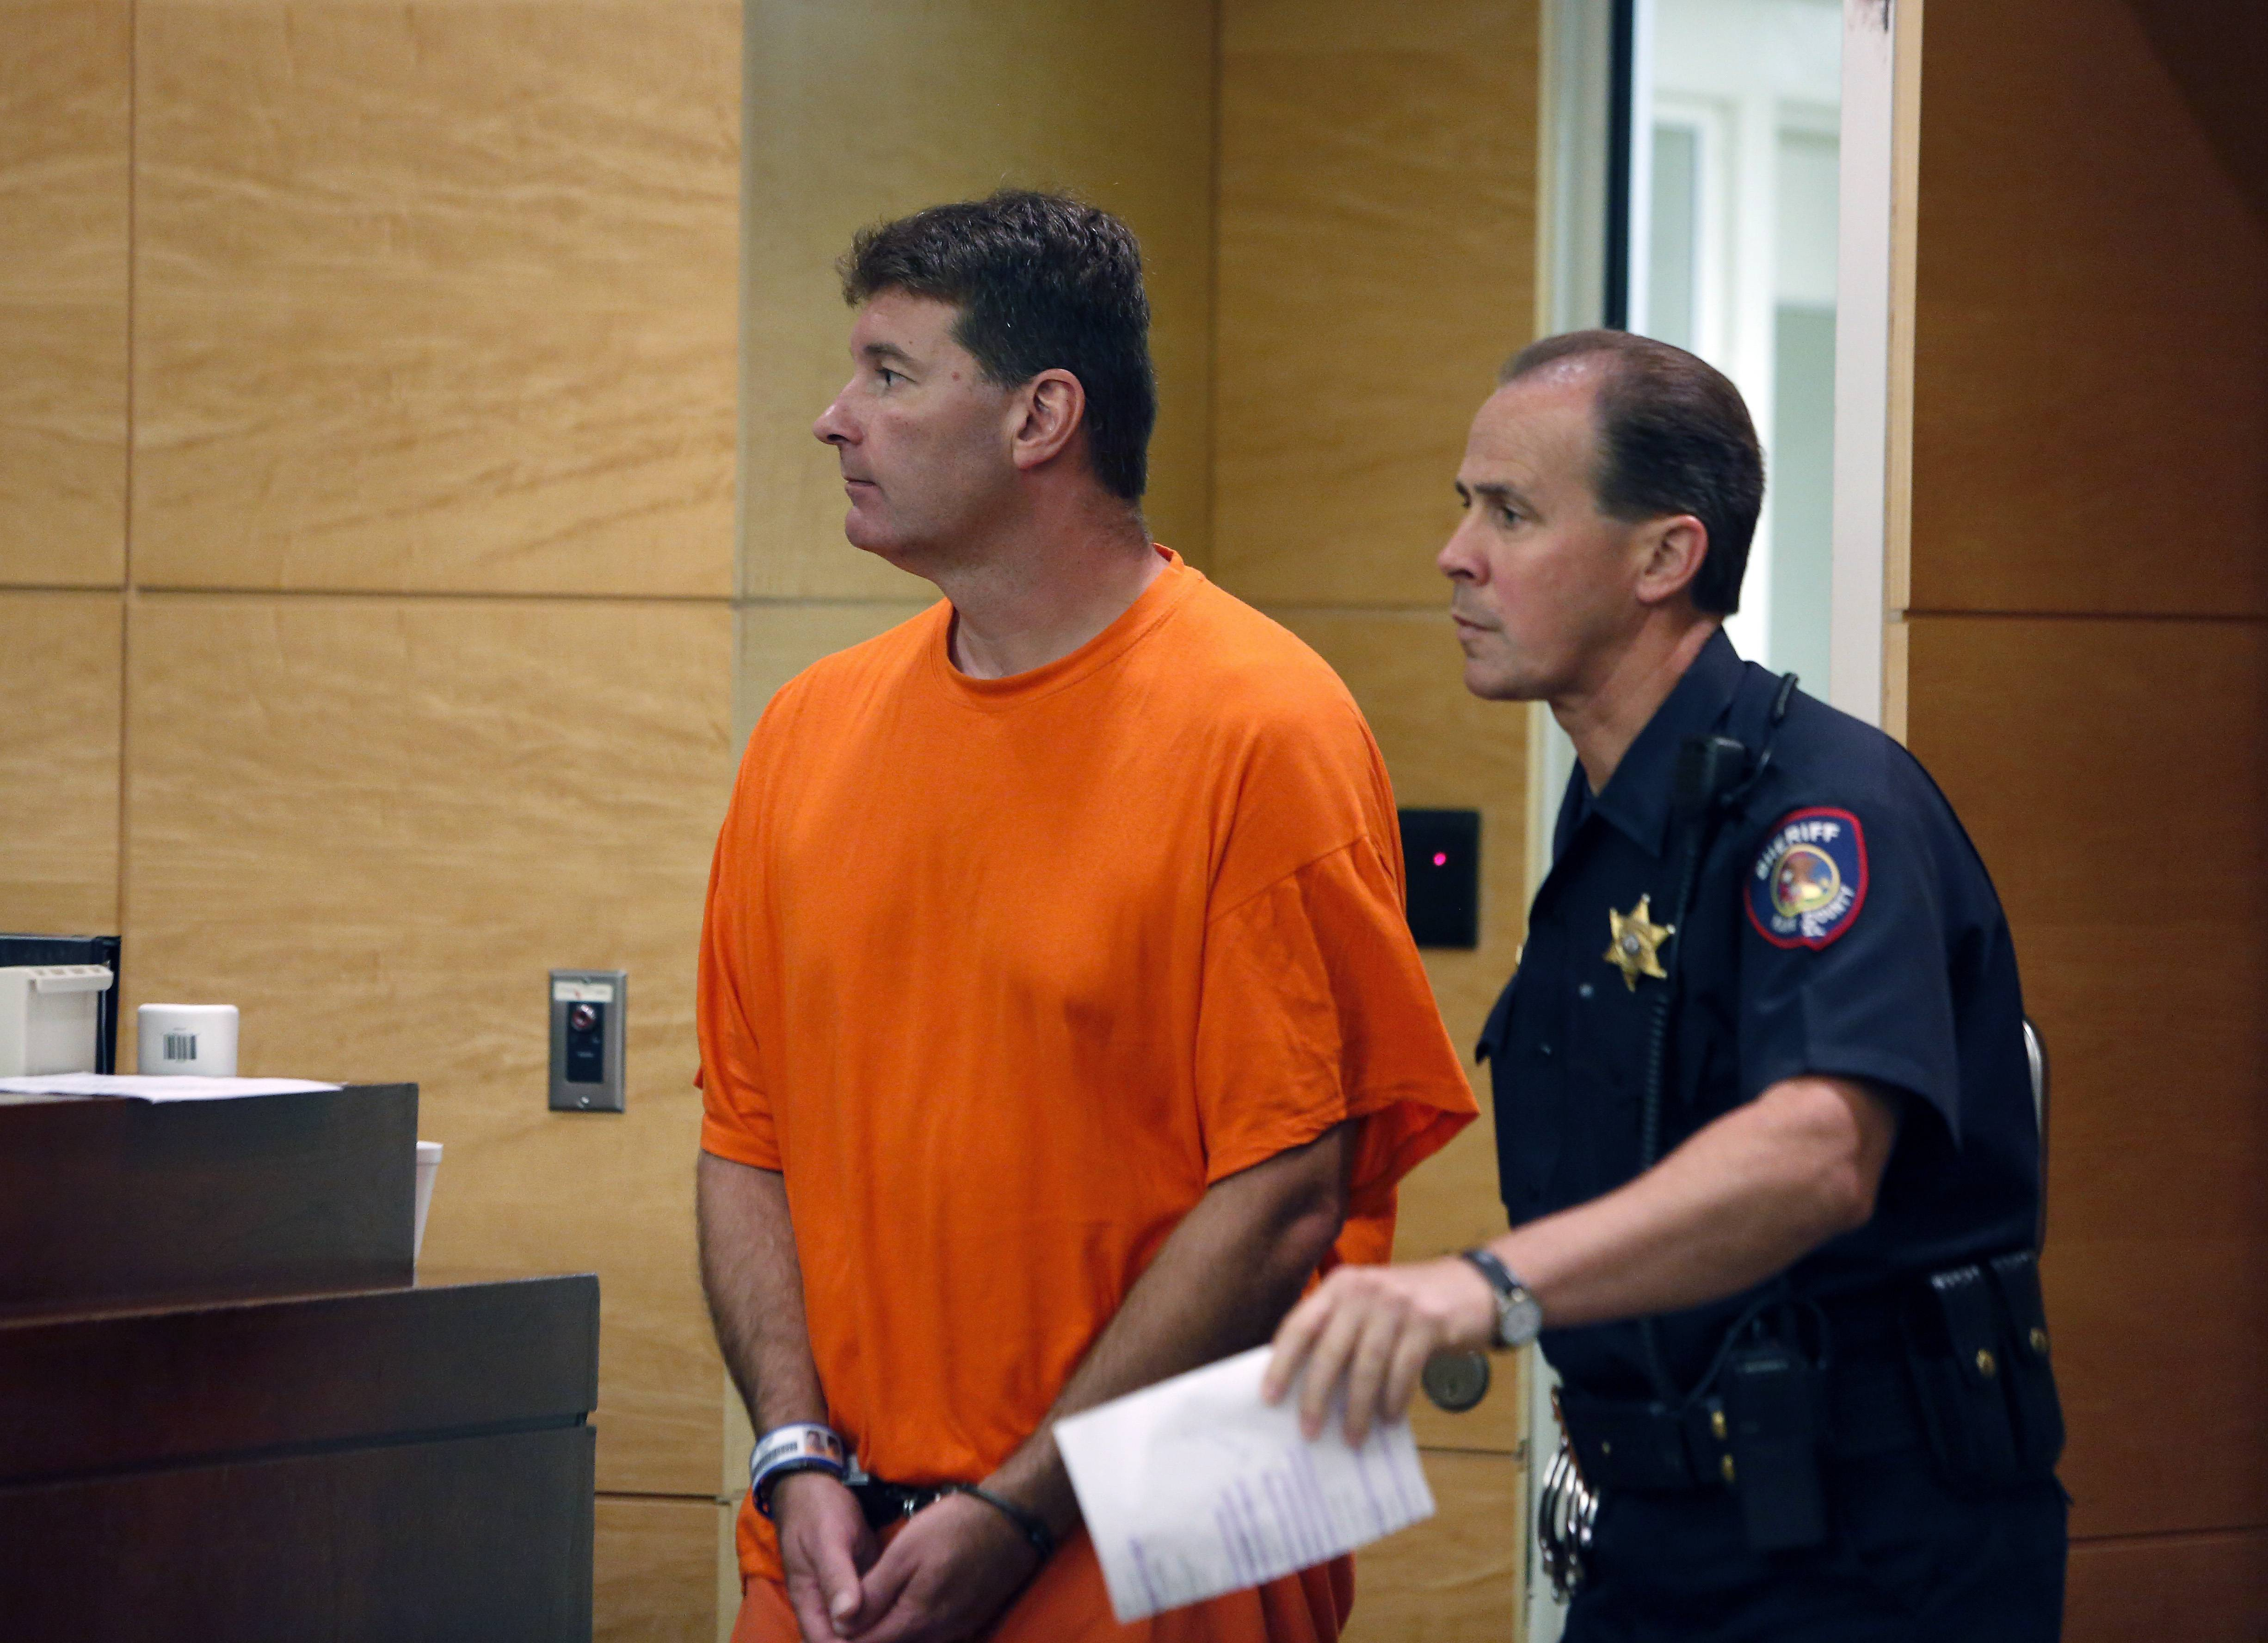 Shadwick R. King is brought into the court by Kane County Sheriff's Deputy Bob Schwer before appearing in front of Judge James C. Hallock Wednesday in St. Charles. King, 47, is accused of killing his wife, Kathleen King, 32, by asphyxiating her July 6 at their Geneva home and dumping her body along railroad tracks near their home, authorities said.